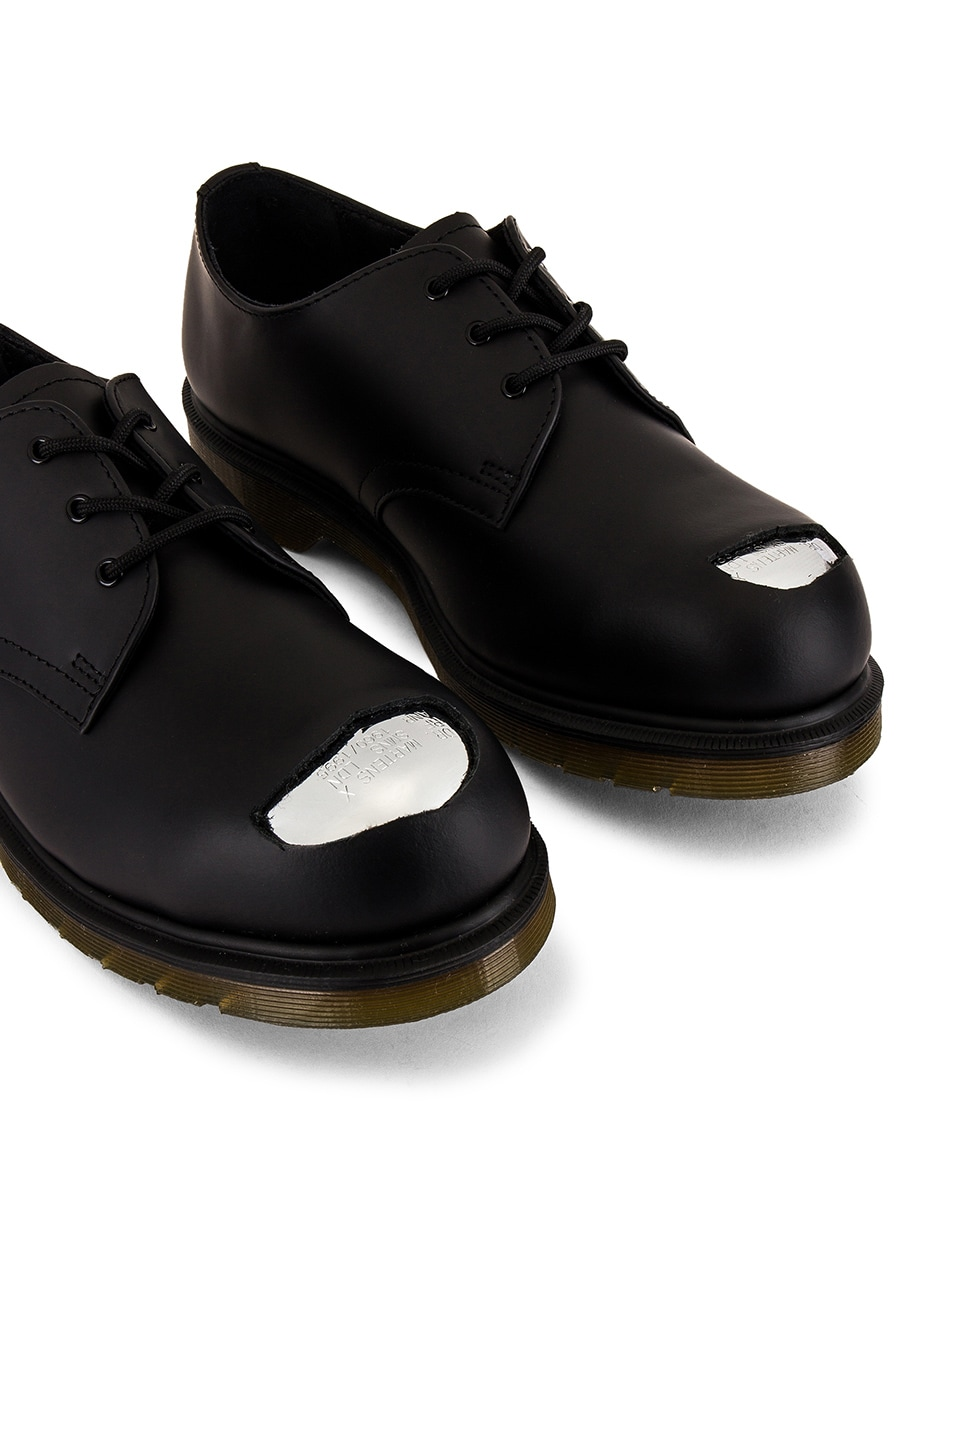 Image 6 of Raf Simons x Dr. Martens Cut Out Steel Toe Shoes in Black